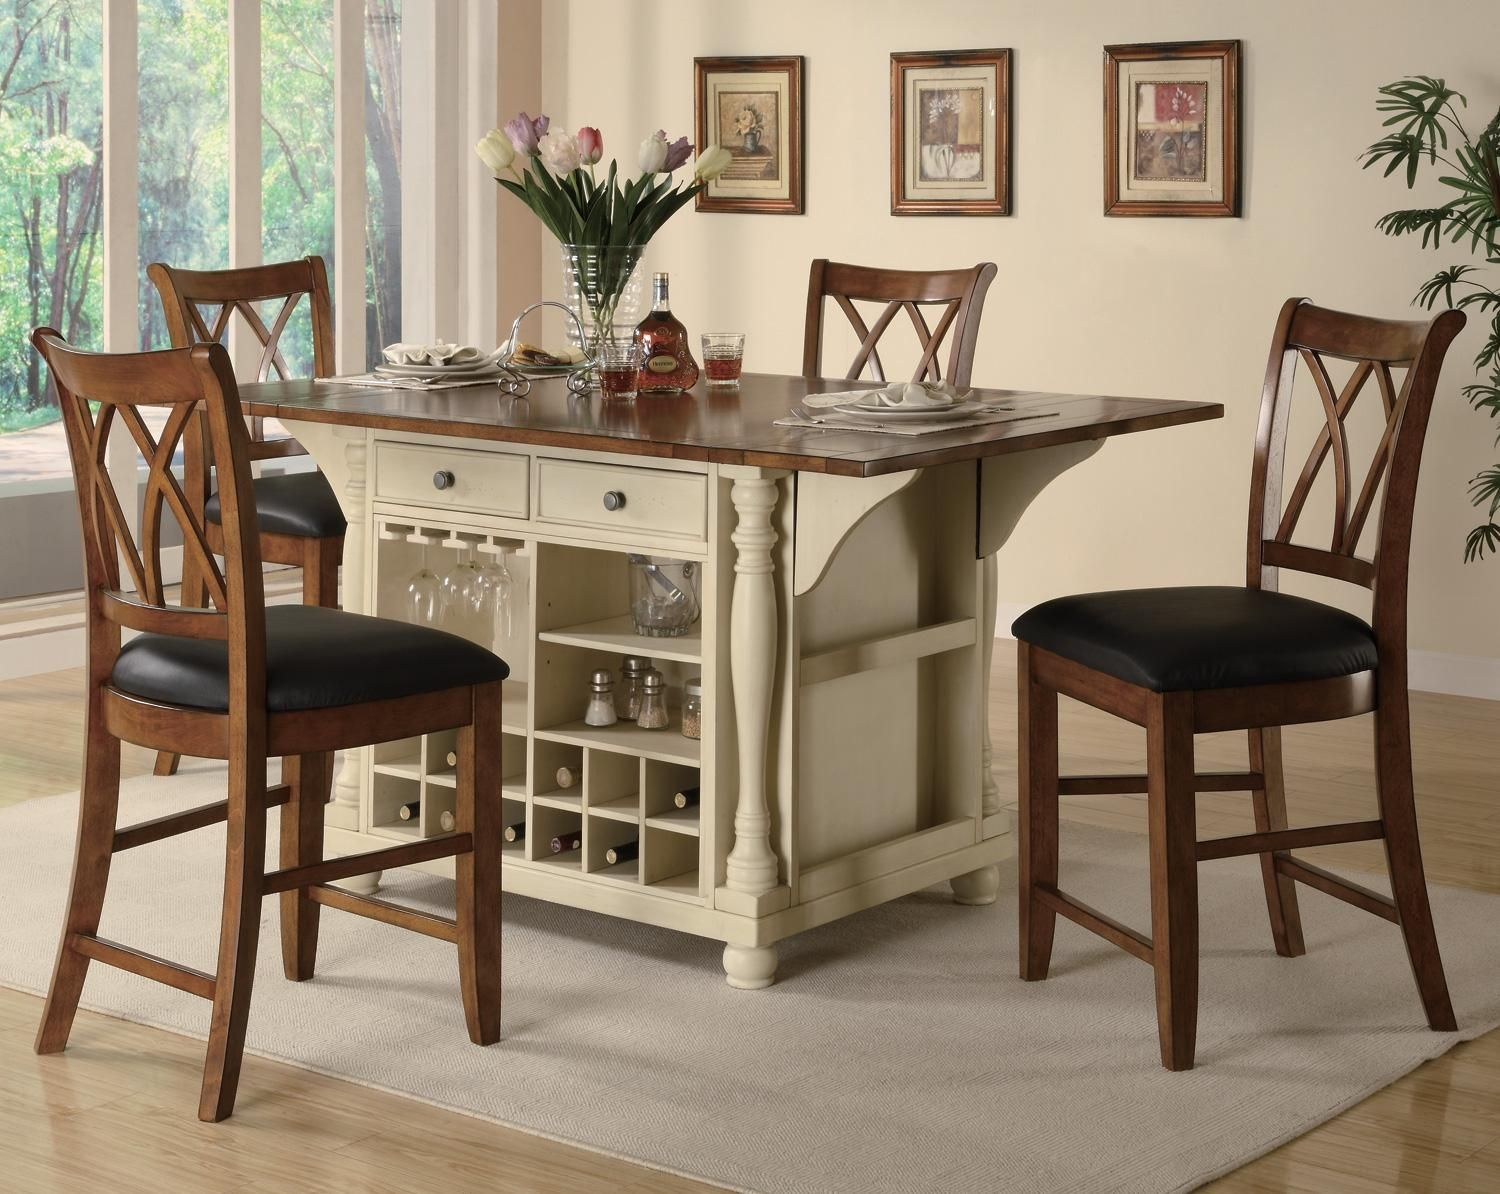 Round Counter Height Kitchen Tables Chairs  Http Alluring Counter Height Kitchen Tables Review